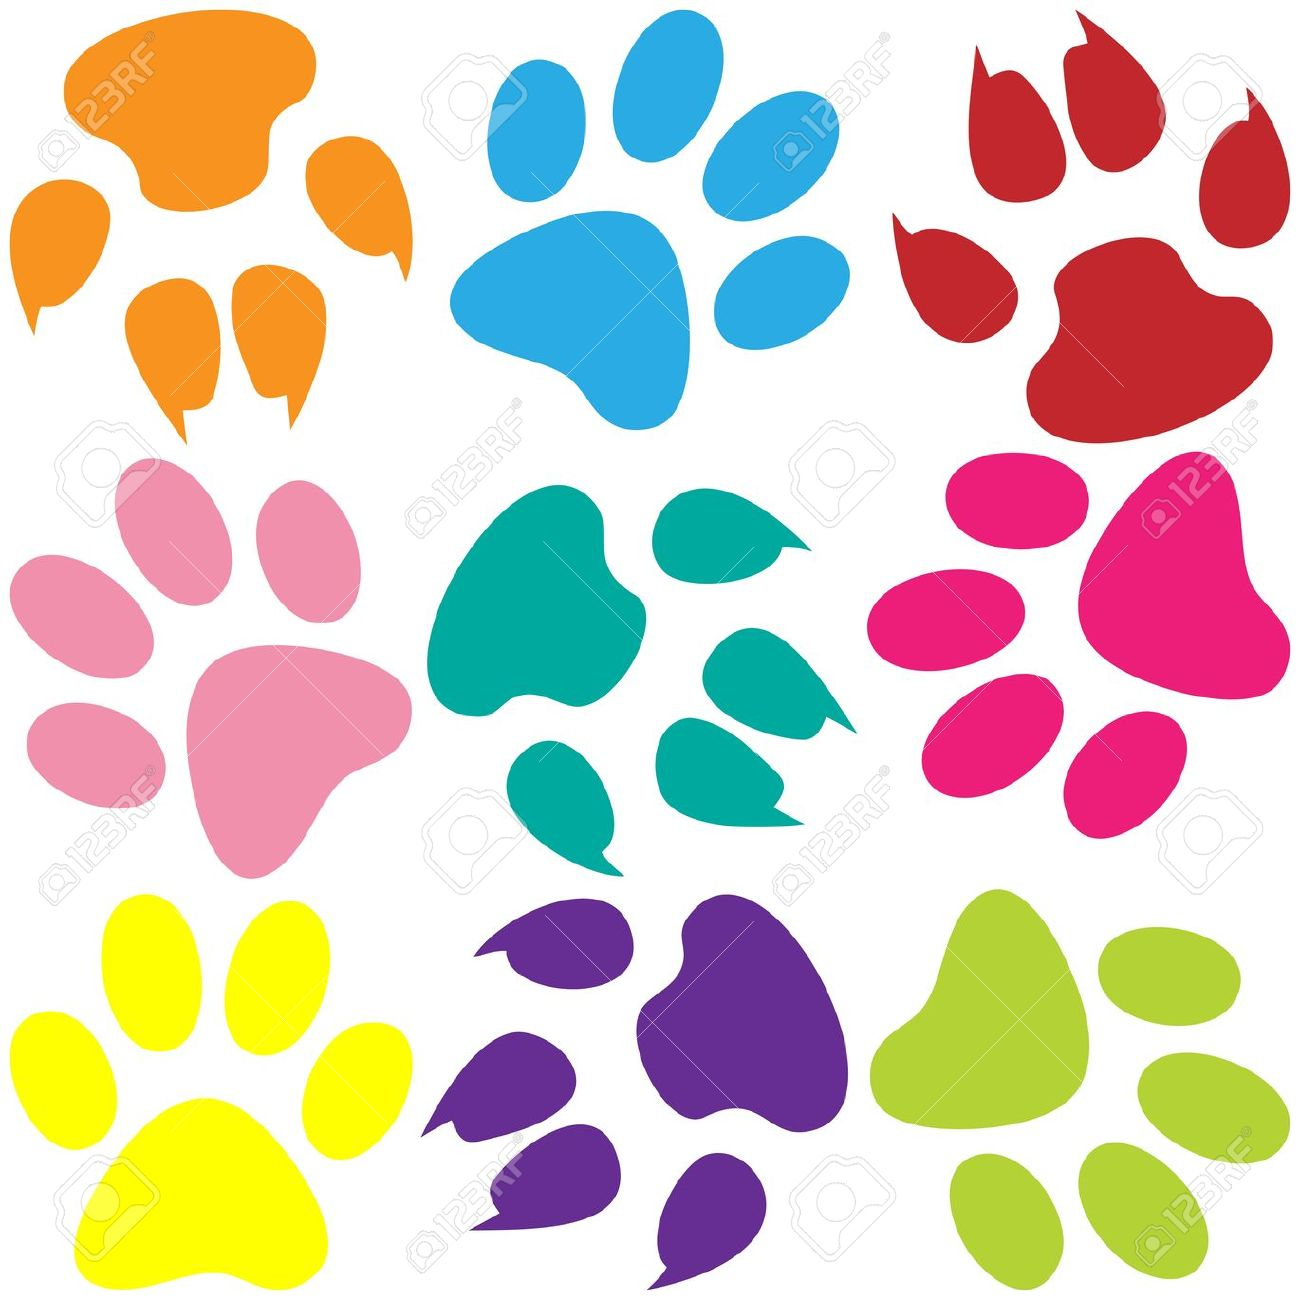 Paw Prints Stock Photos & Pictures. Royalty Free Paw Prints Images.